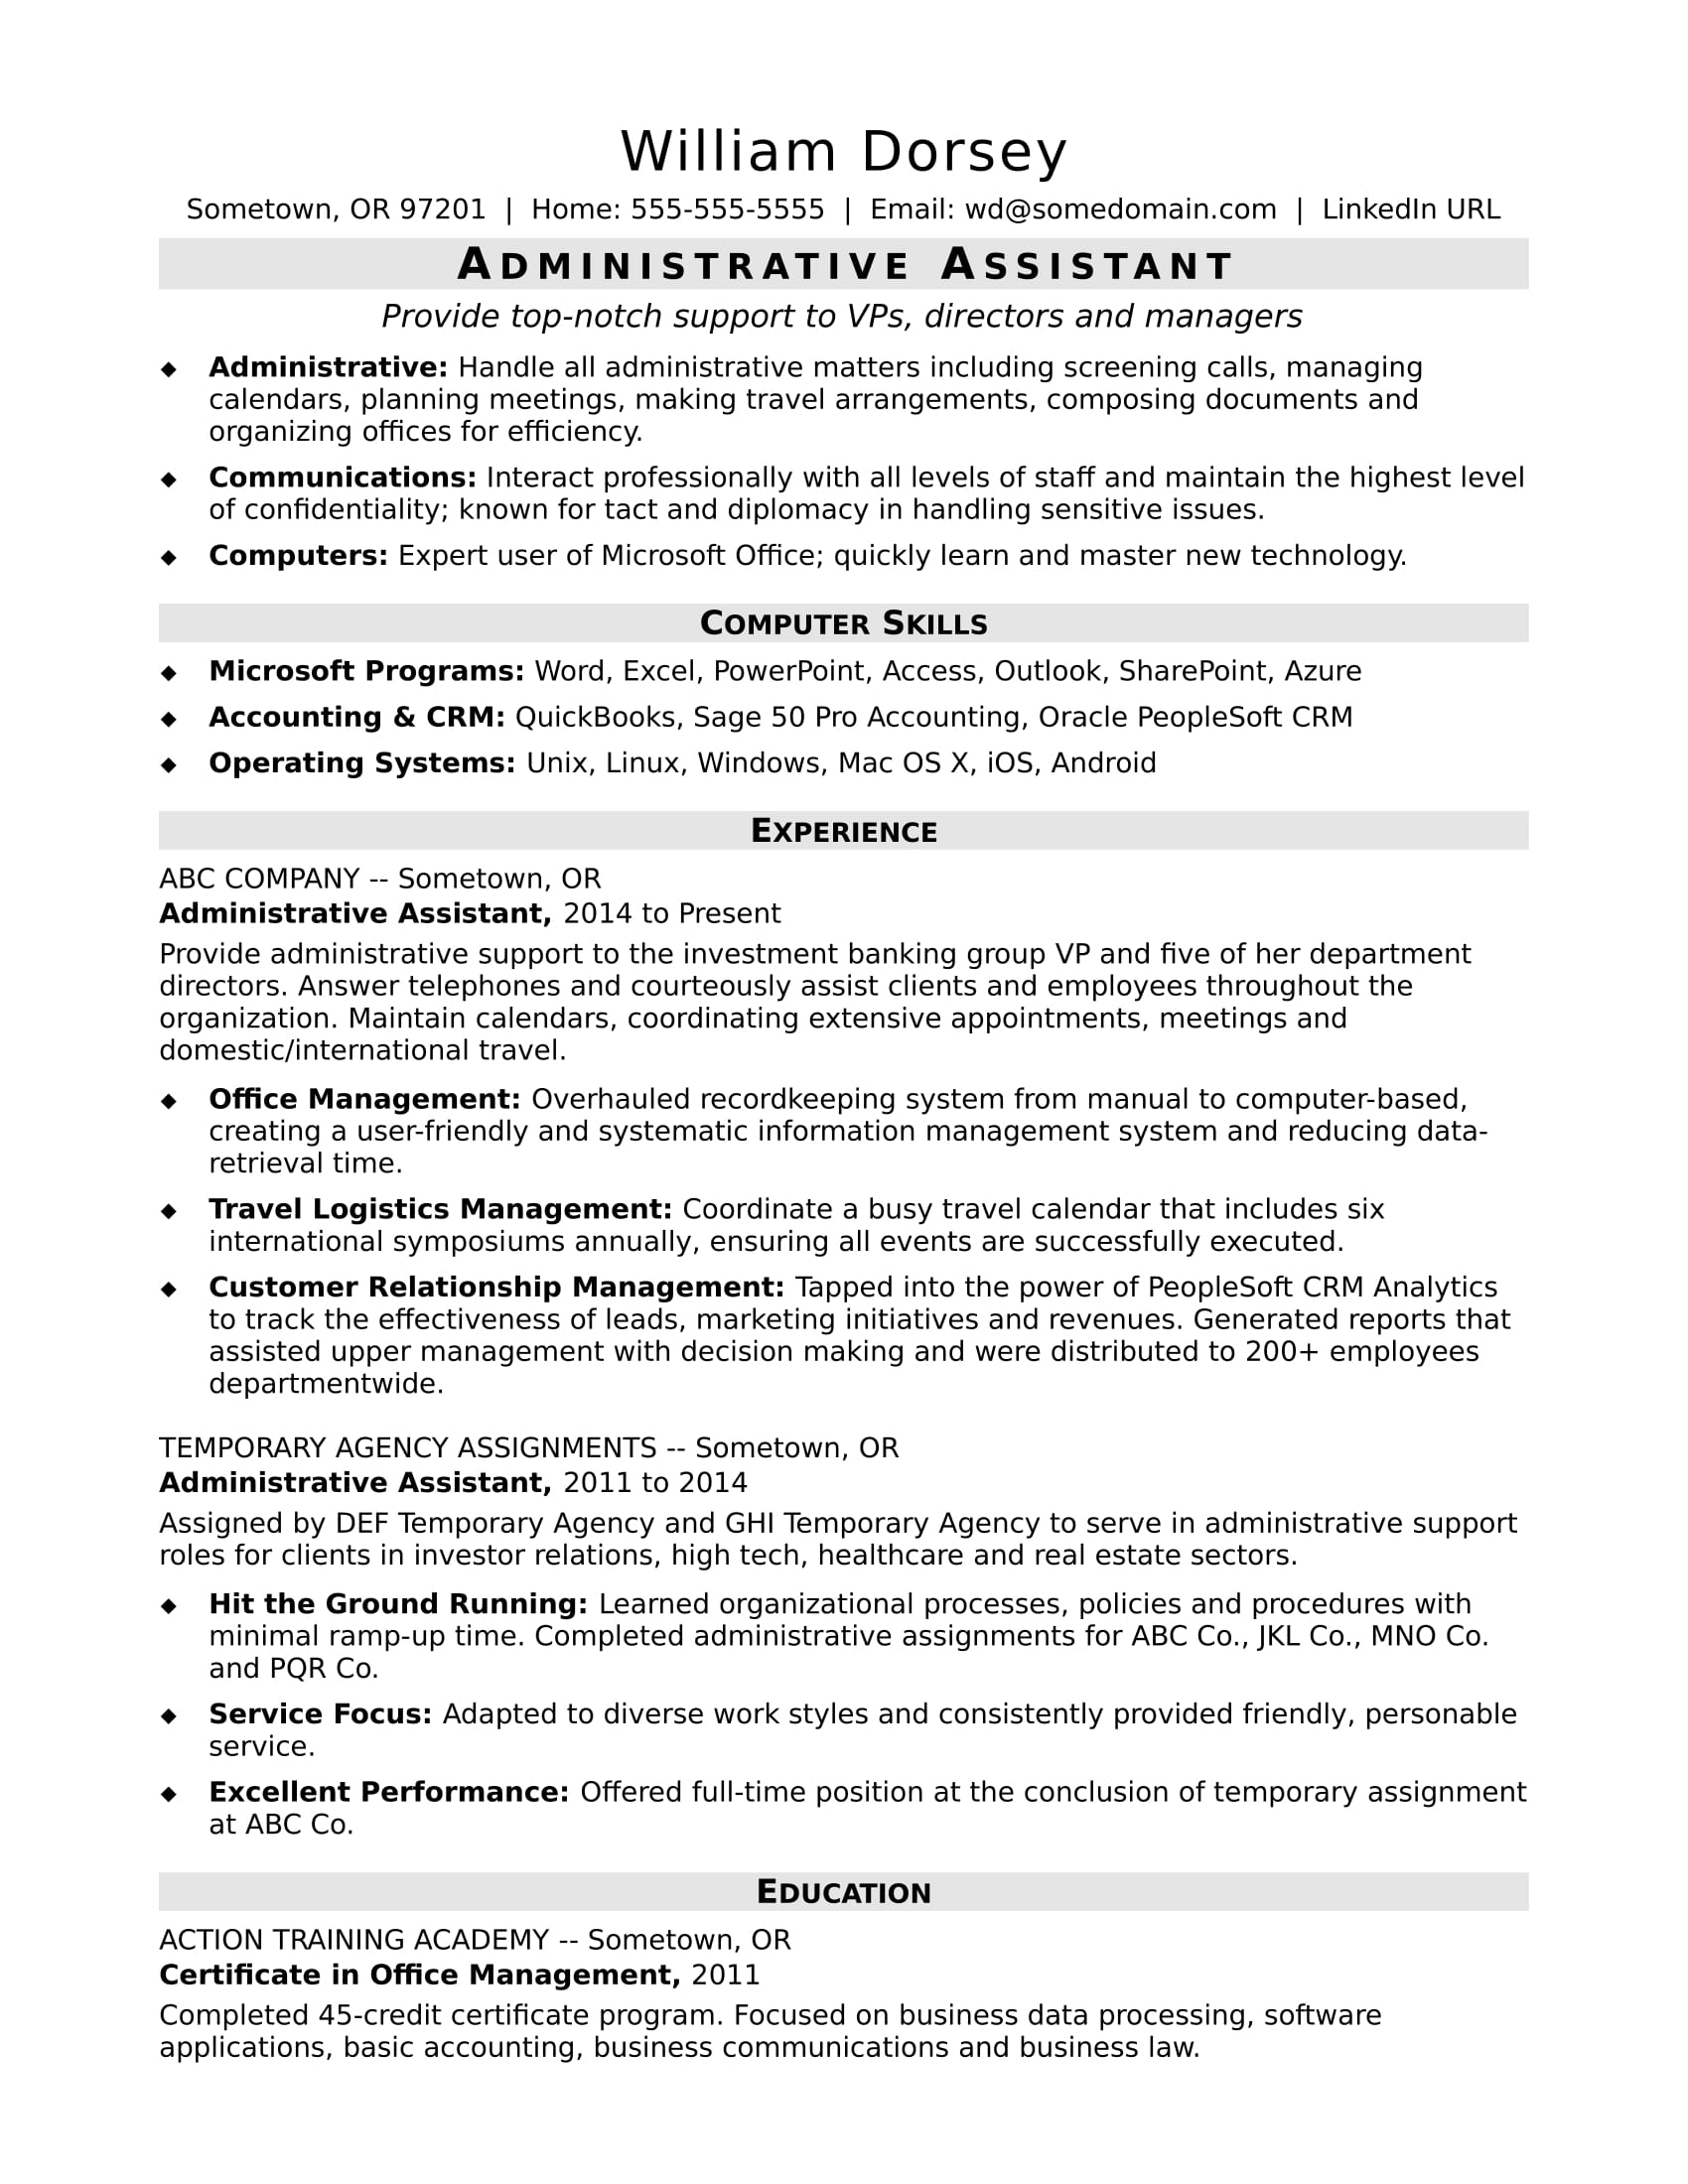 Sample resume for a midlevel administrative assistant